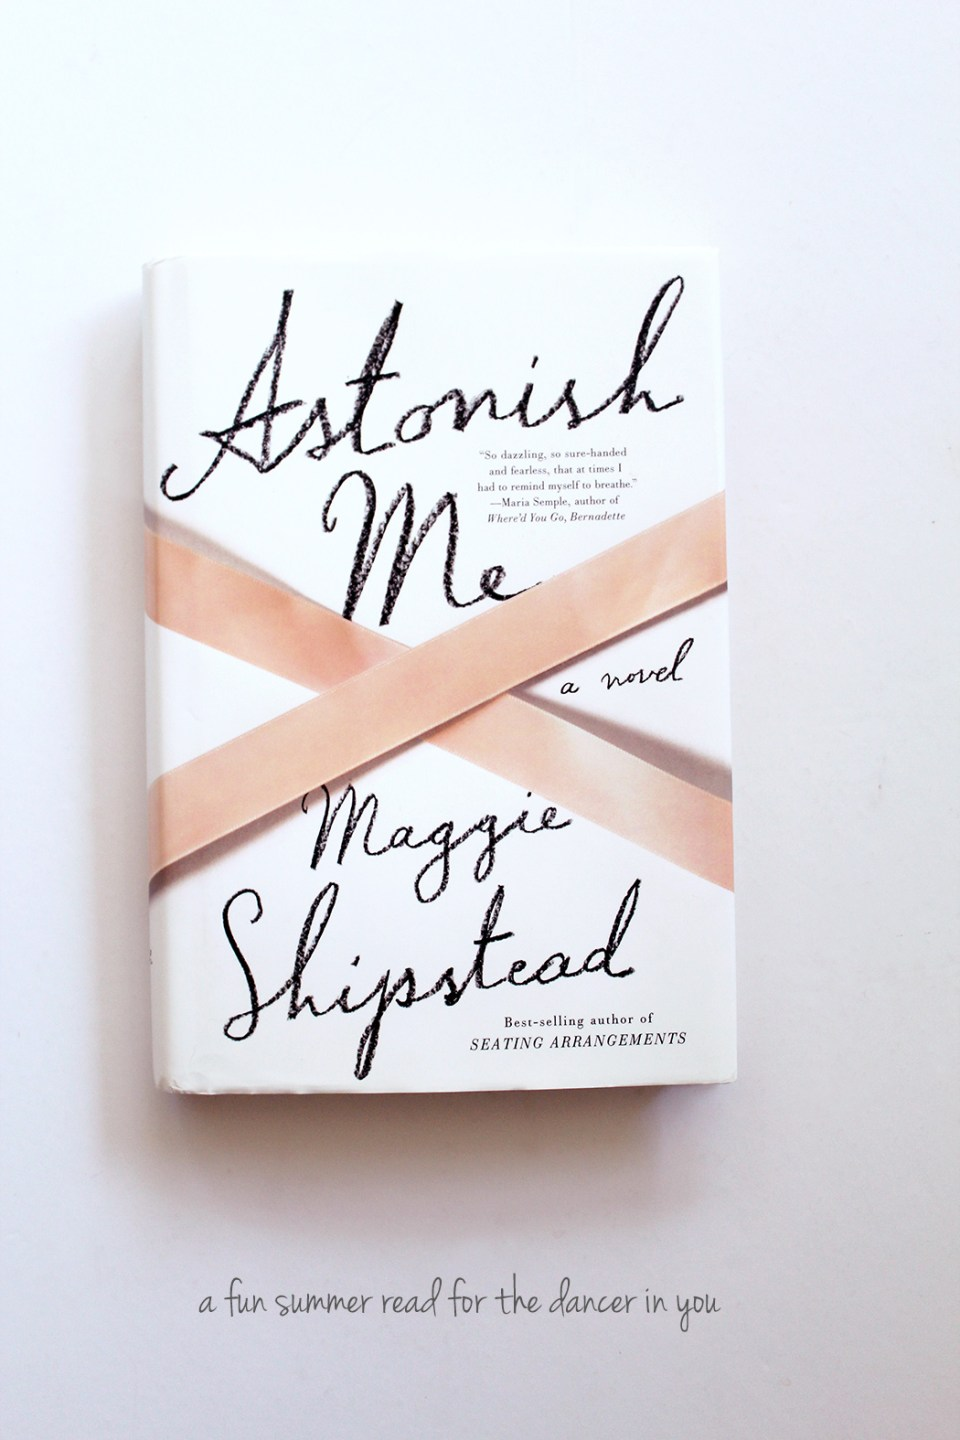 Maggie-Shipstead